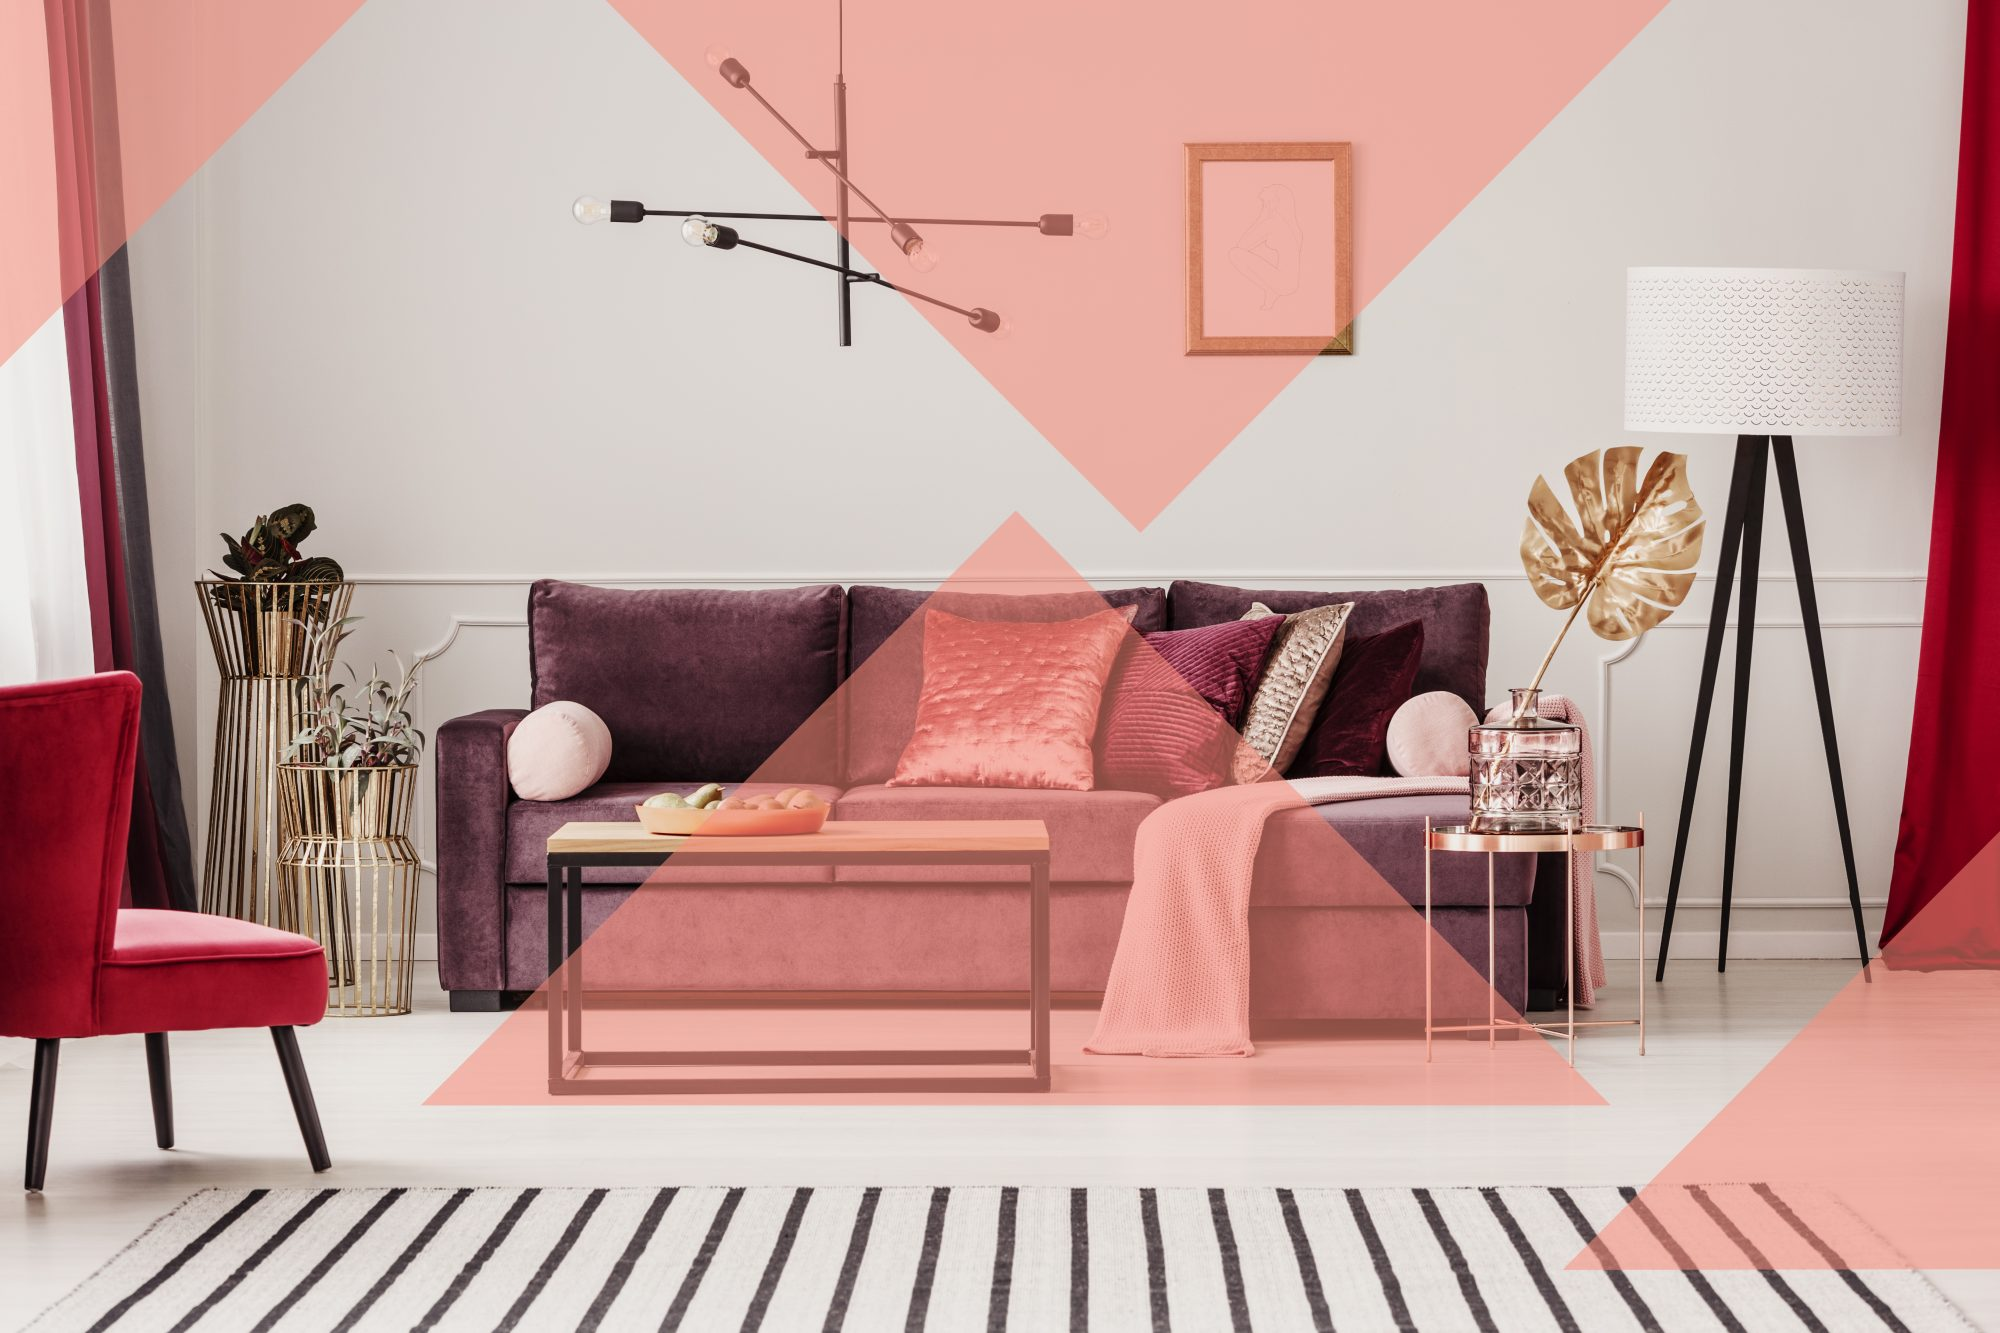 7 Feng Shui Living Room Tips Anyone Can Do | Real Simple